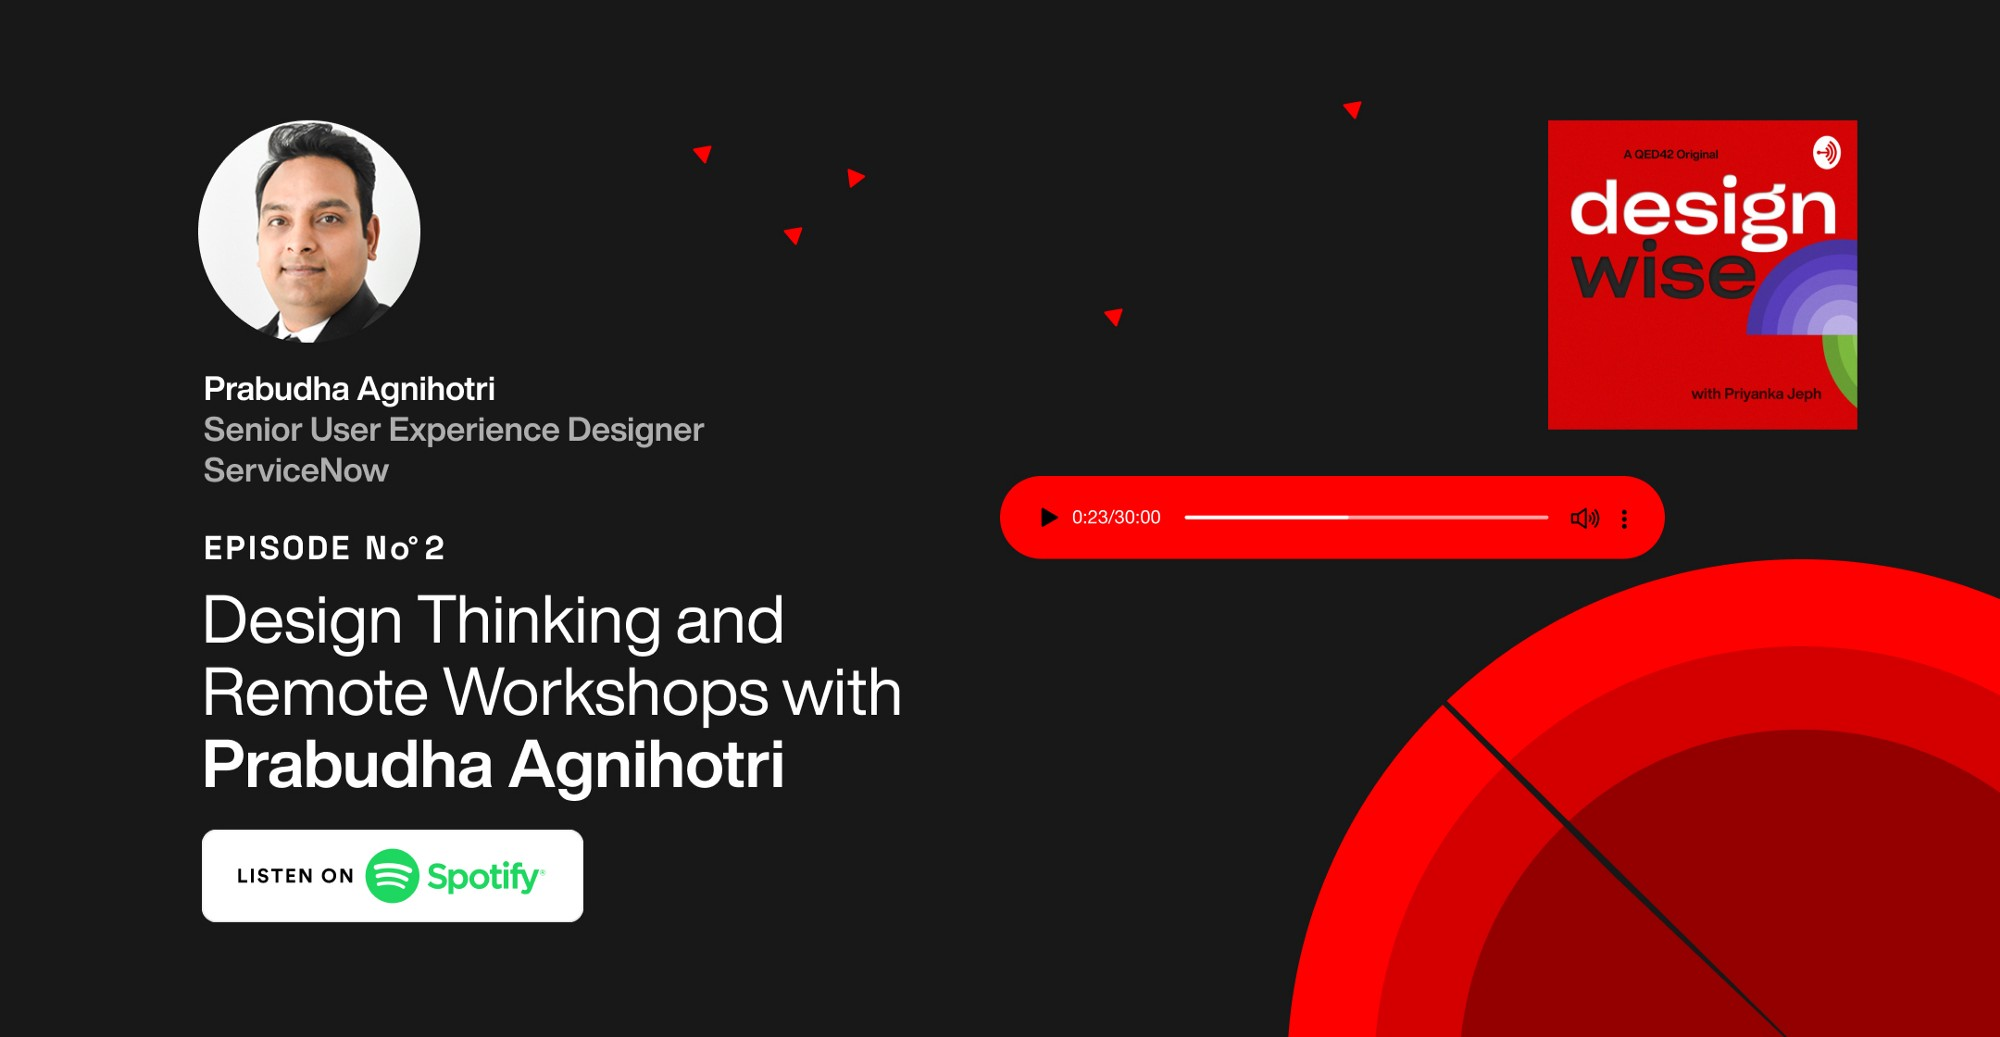 Cover image with title and photograph of Prabudha Agnihotri Sr. UX designer at Service now. Mentioning Episode 2 . Design Thinking and Remote work with Prabudha Agnihotri with a CTA button Listen on Spotify